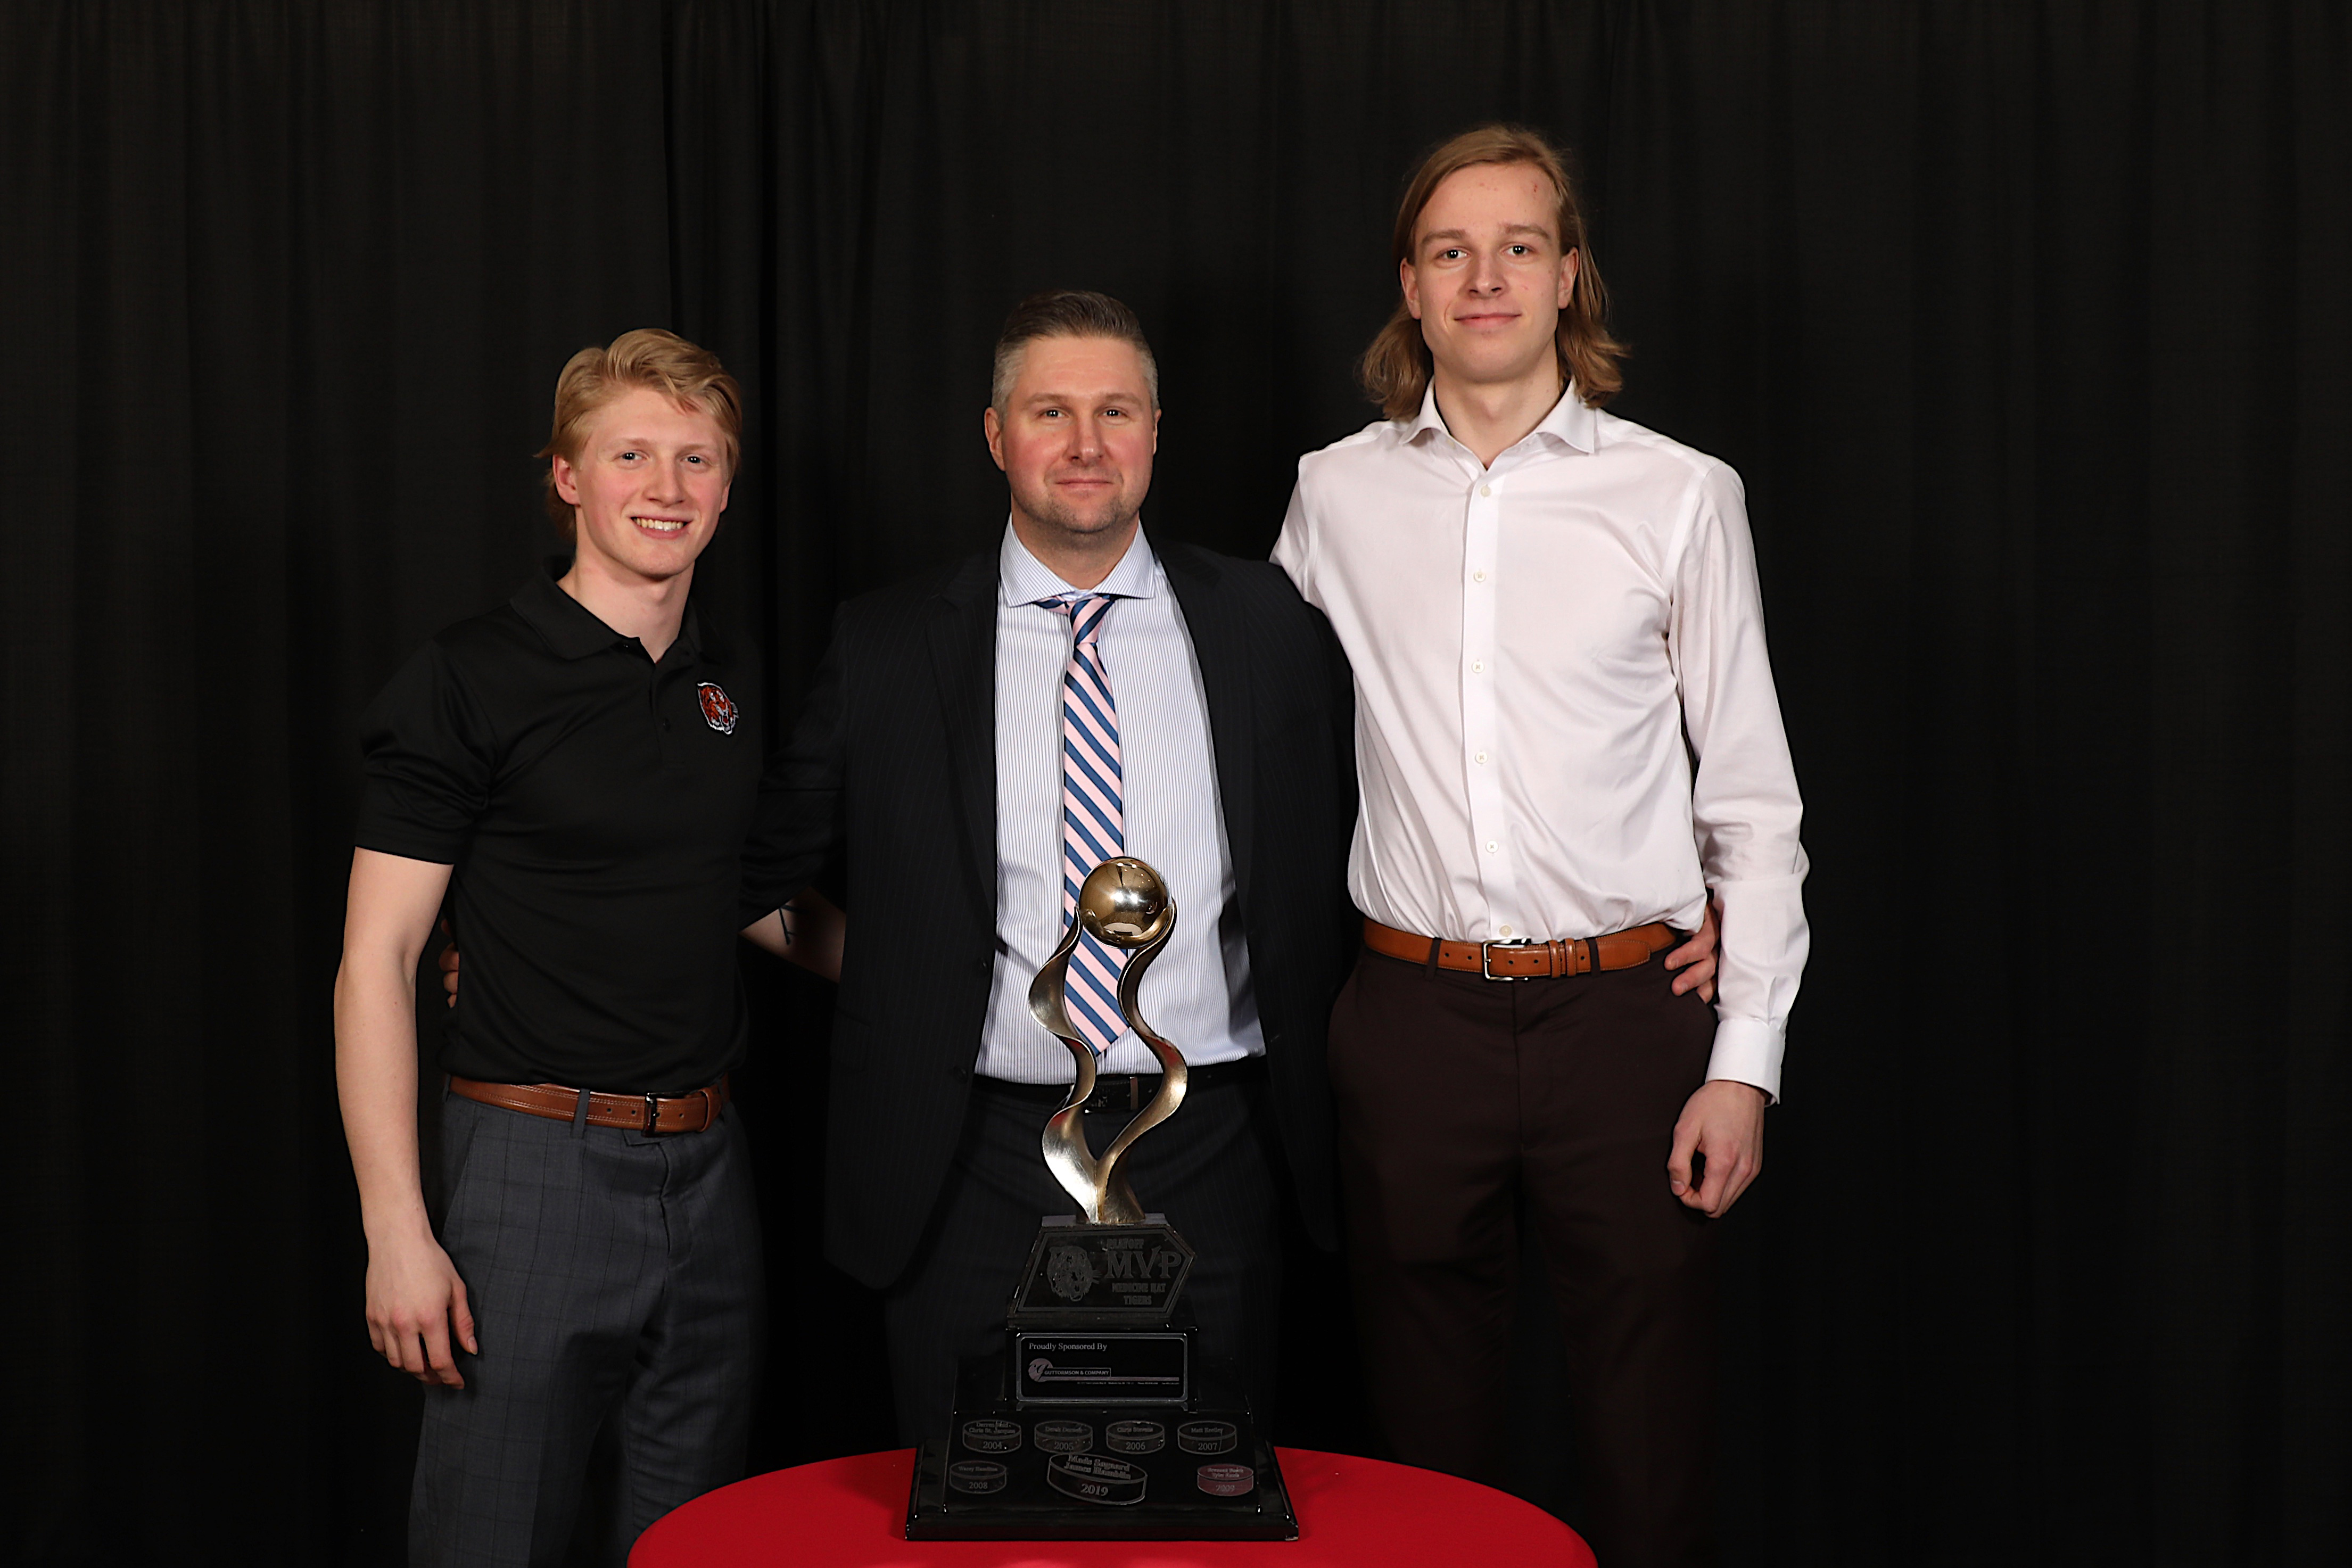 AC Ryan Smith presented the Guttormson & Co. Chartered Accountants Playoff MVP to Mads Søgaard & James Hamblin